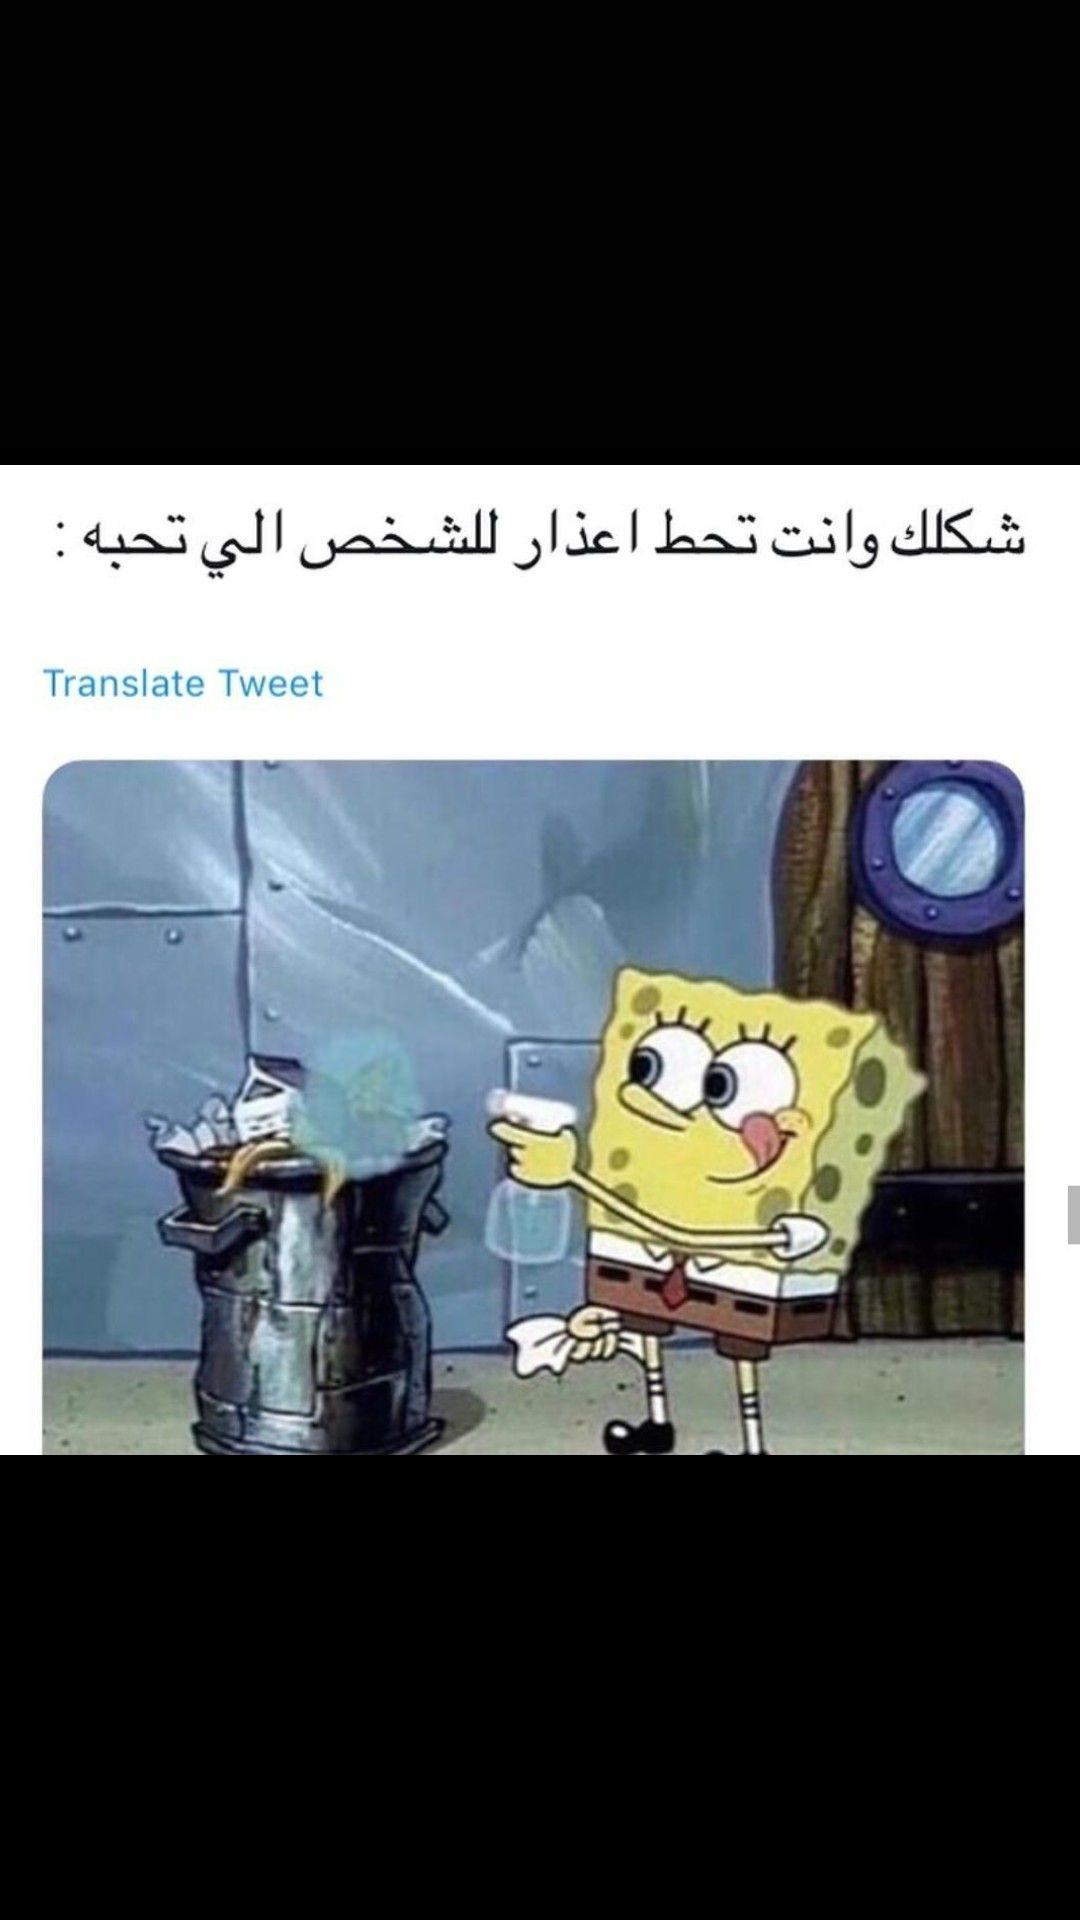 Pin By Lolo On استهبال Funny Arabic Quotes Arabic Funny Beautiful Arabic Words